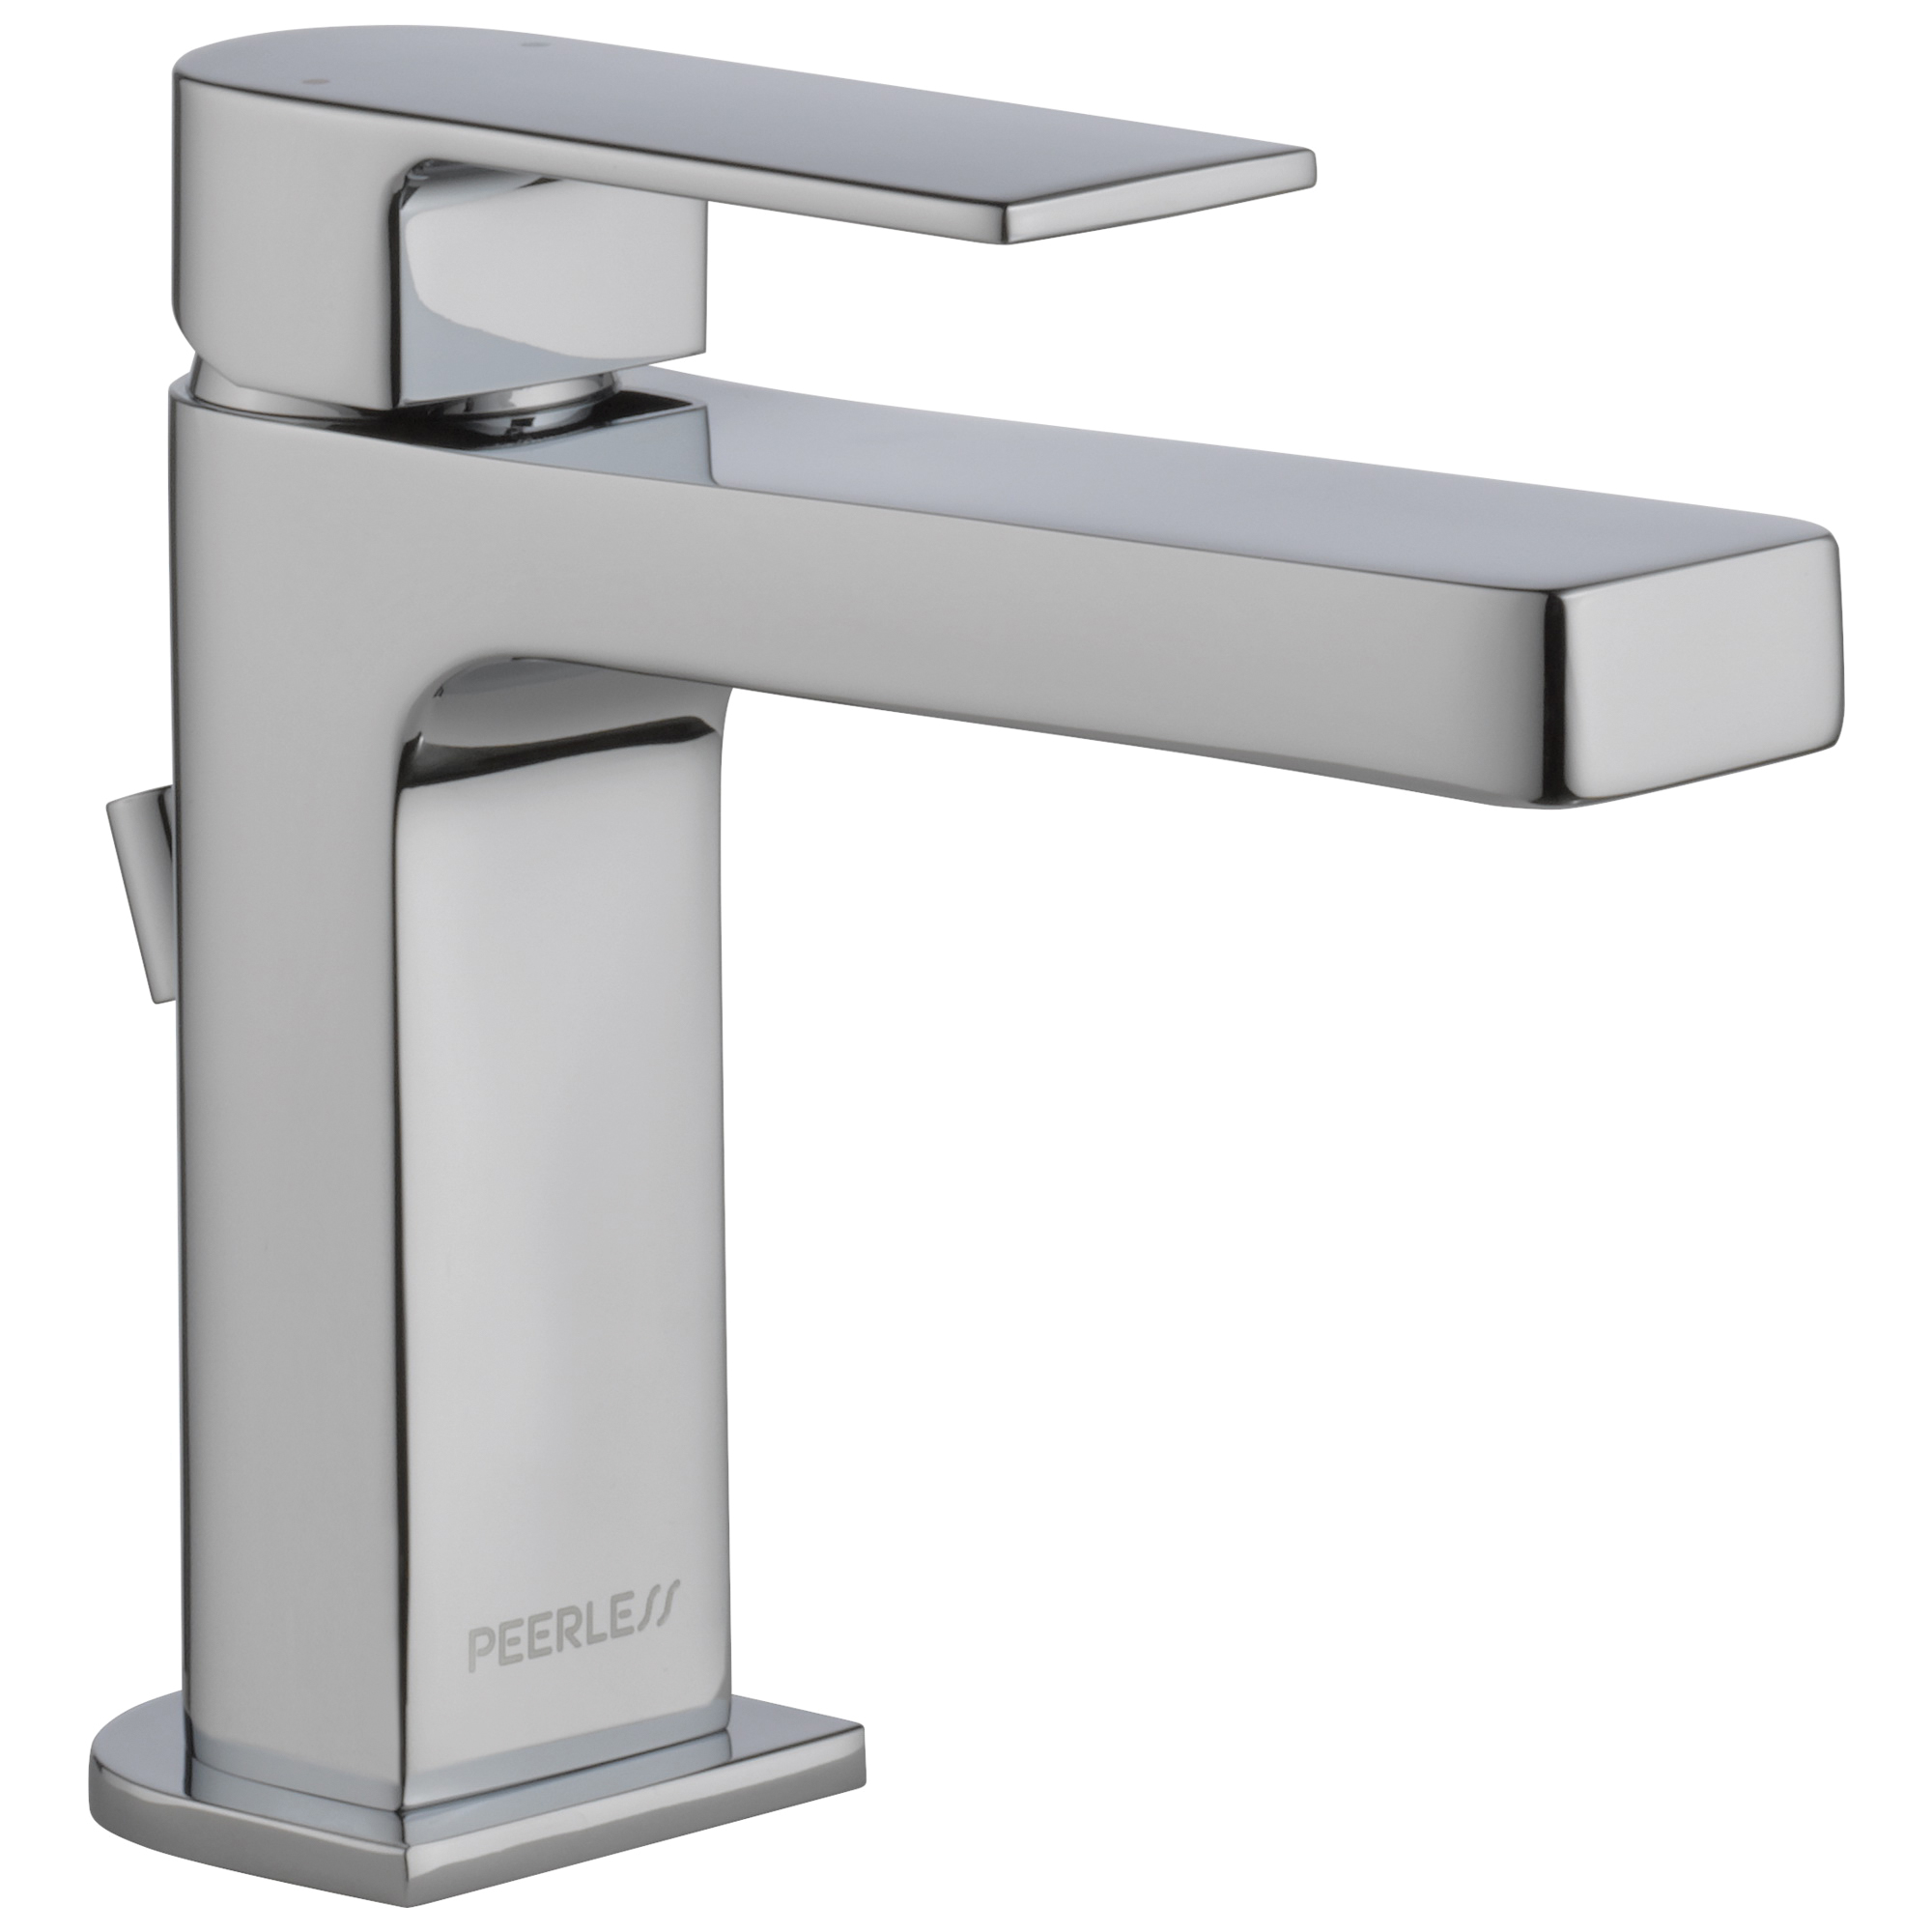 Peerless® P1519LF-M Bathroom Faucet, Xander™, Chrome Plated, 1 Handles, Metal Pop-Up Drain, 1 gpm